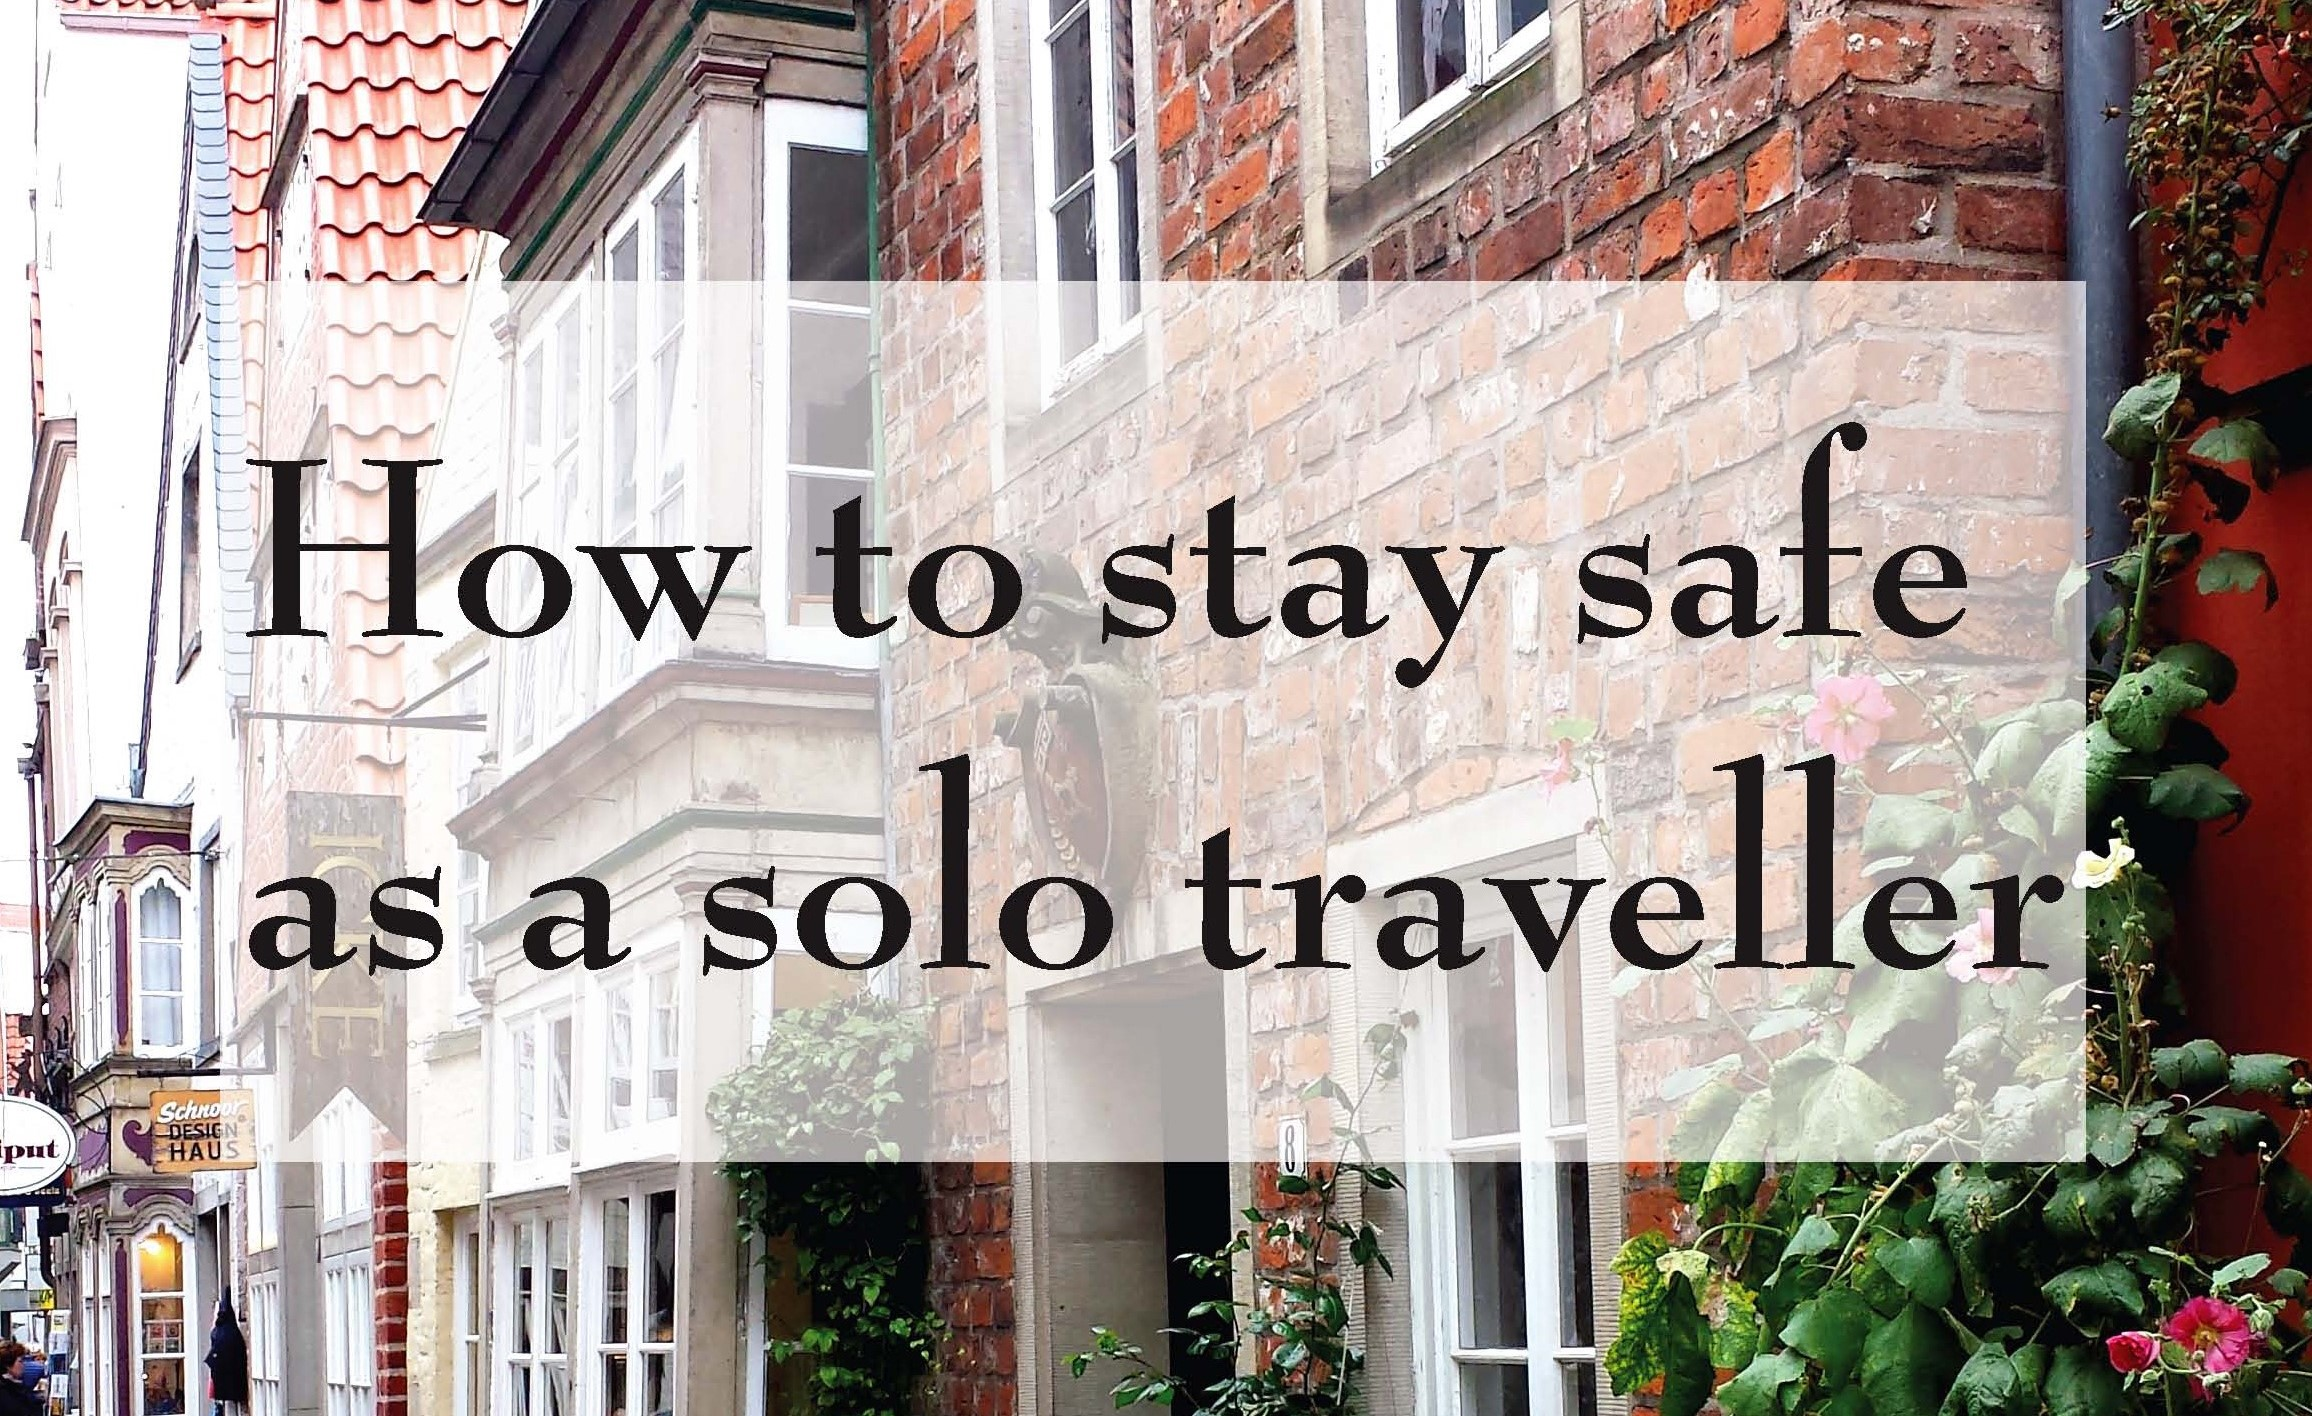 How To Stay Safe As A Solo Traveller